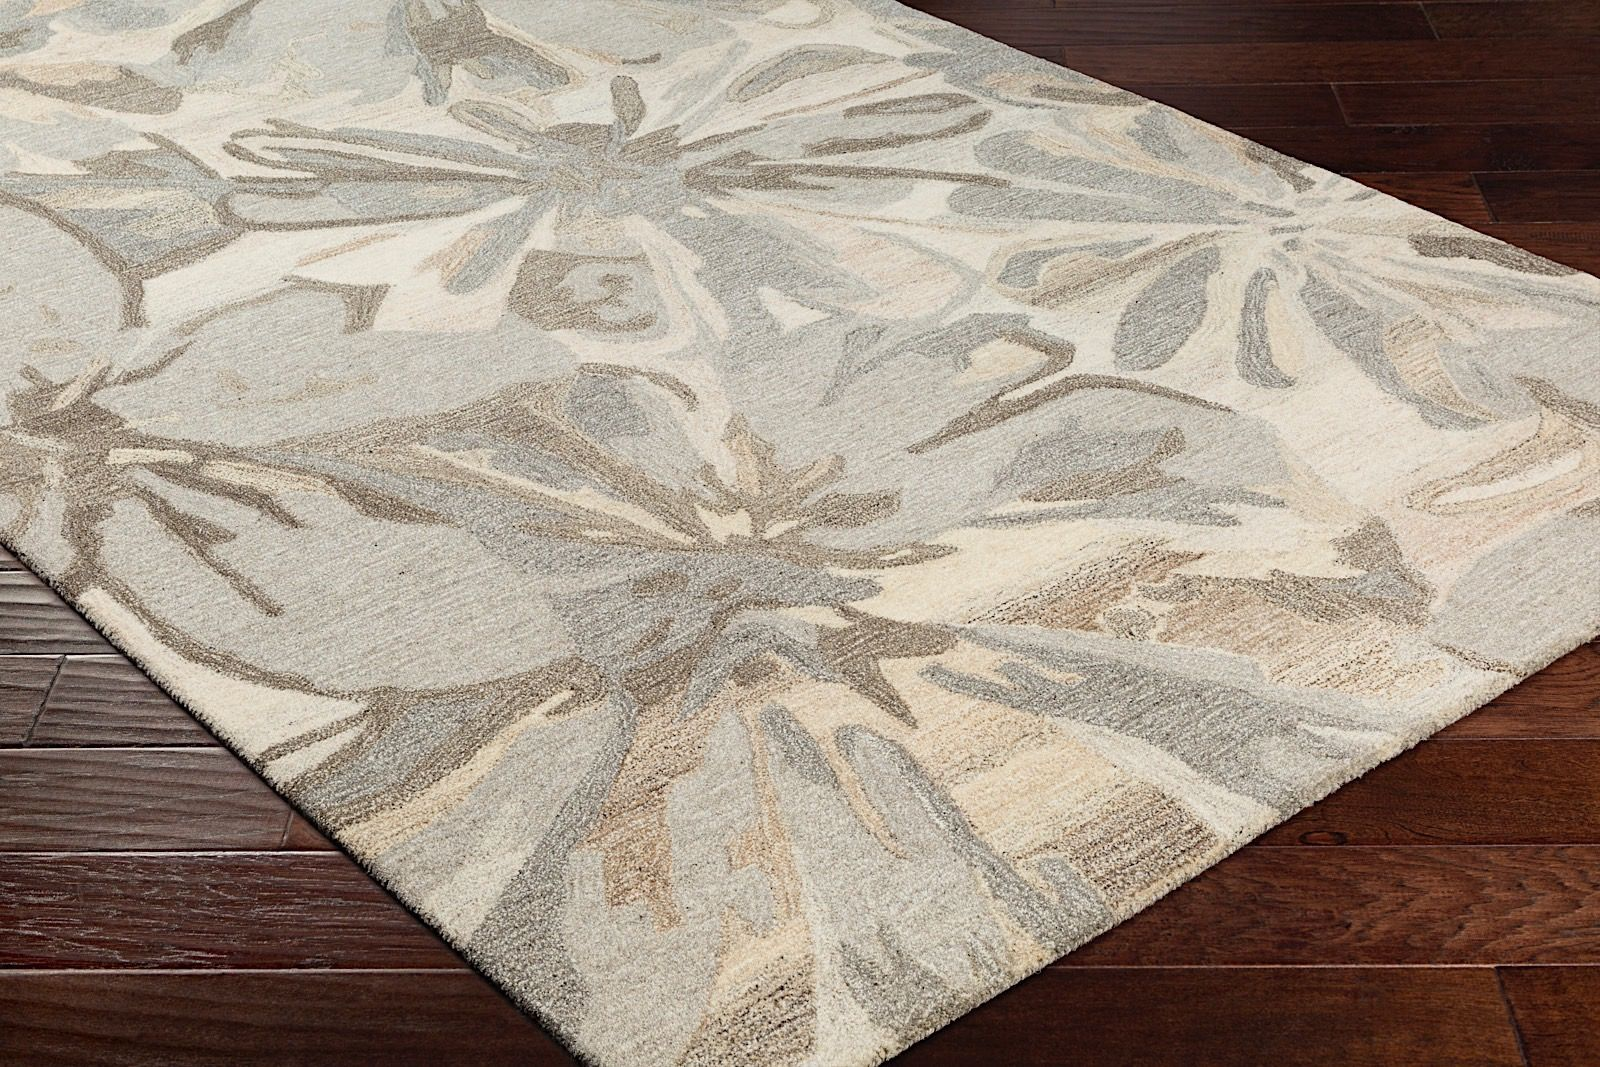 Surya Athena Country Floral Area Rug Collection Rugpal